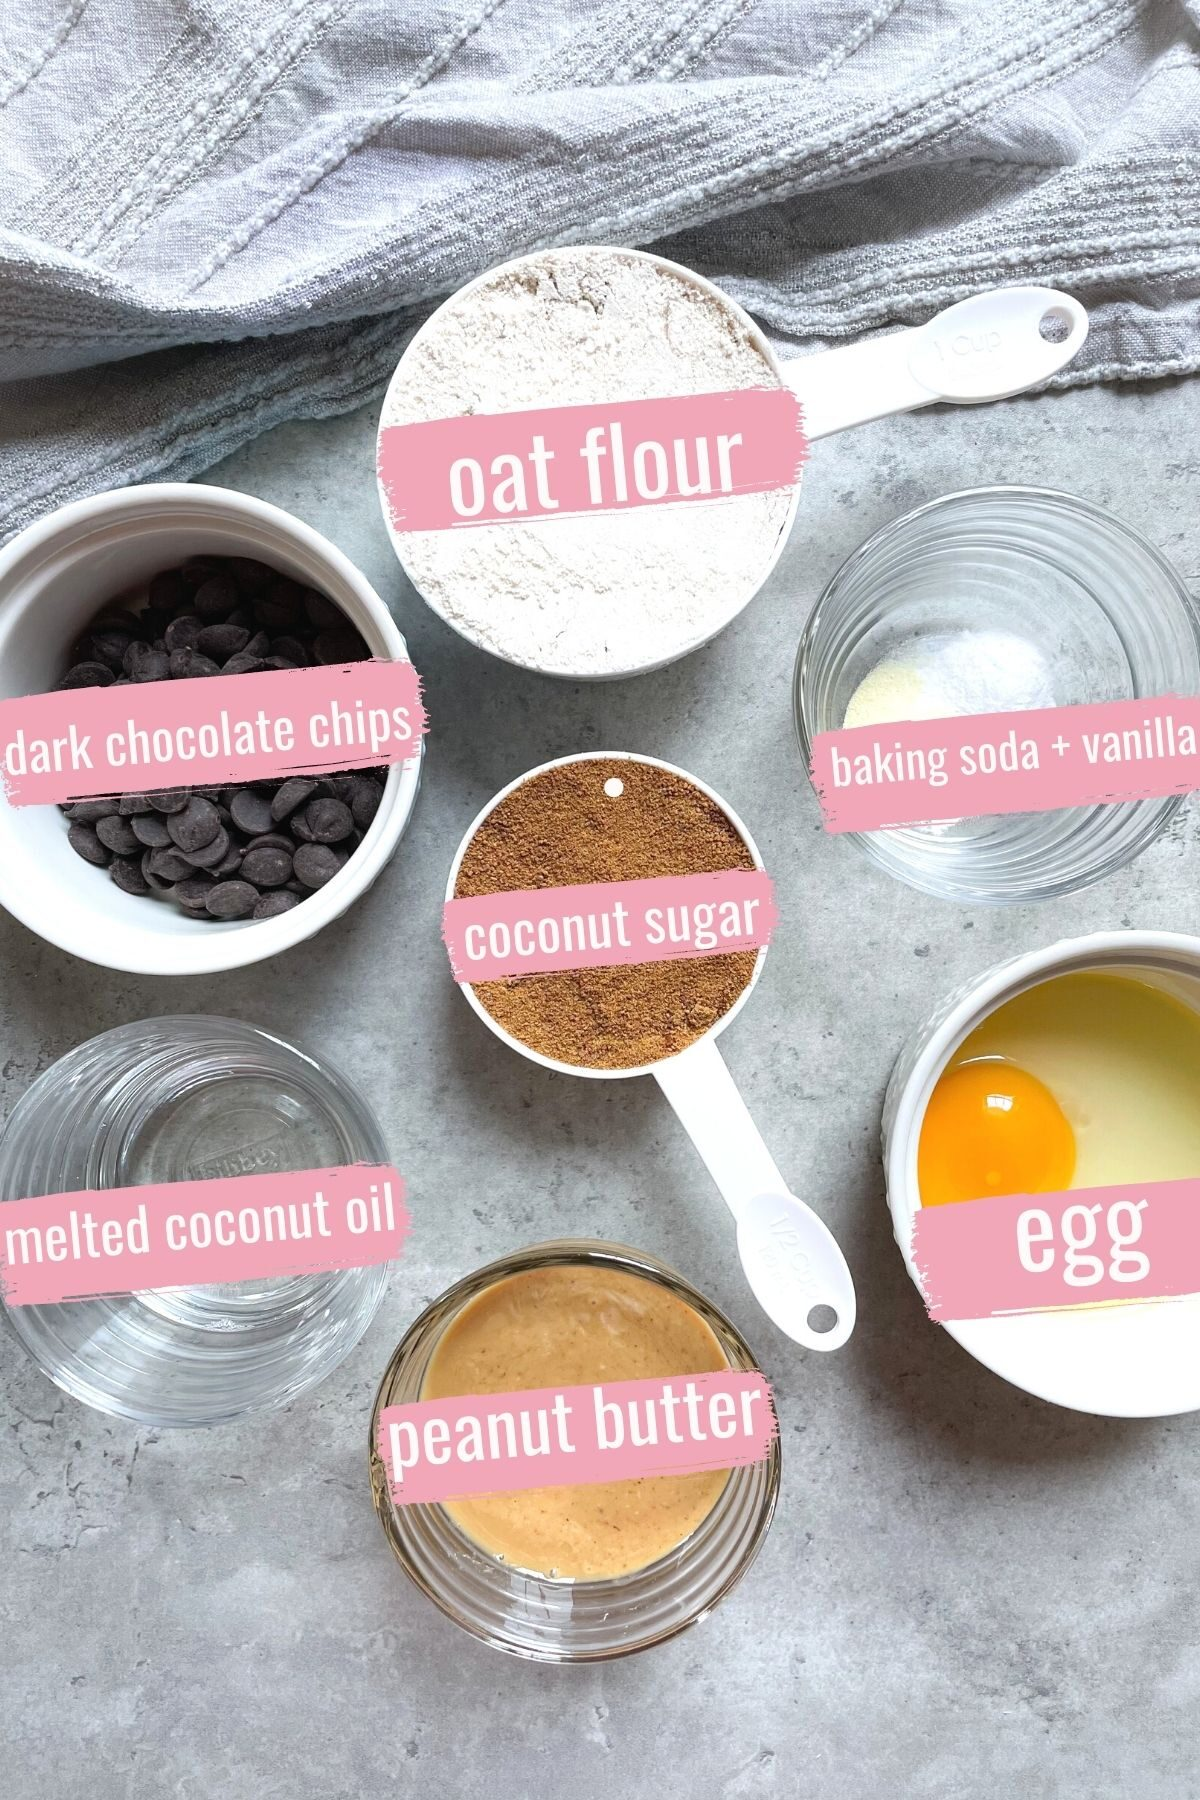 ingredients for oat flour chocolate chip cookies